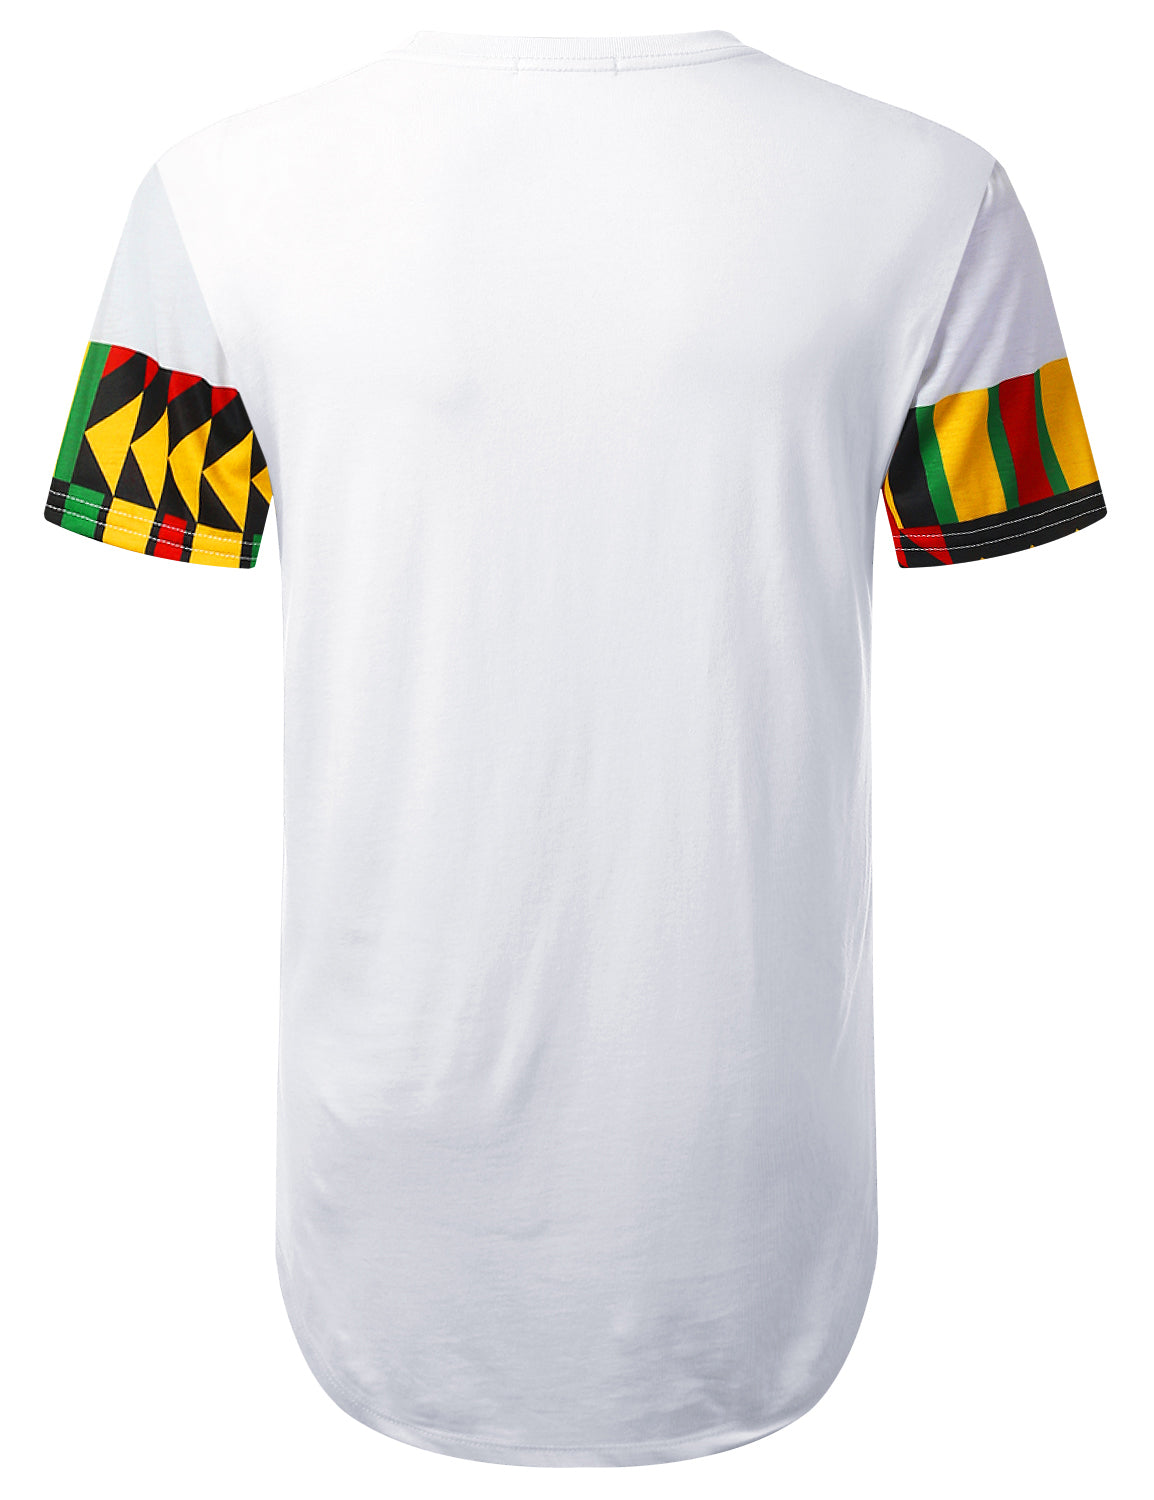 WHITE ZigZag Aztec Pocket Longline T-shirt - URBANCREWS